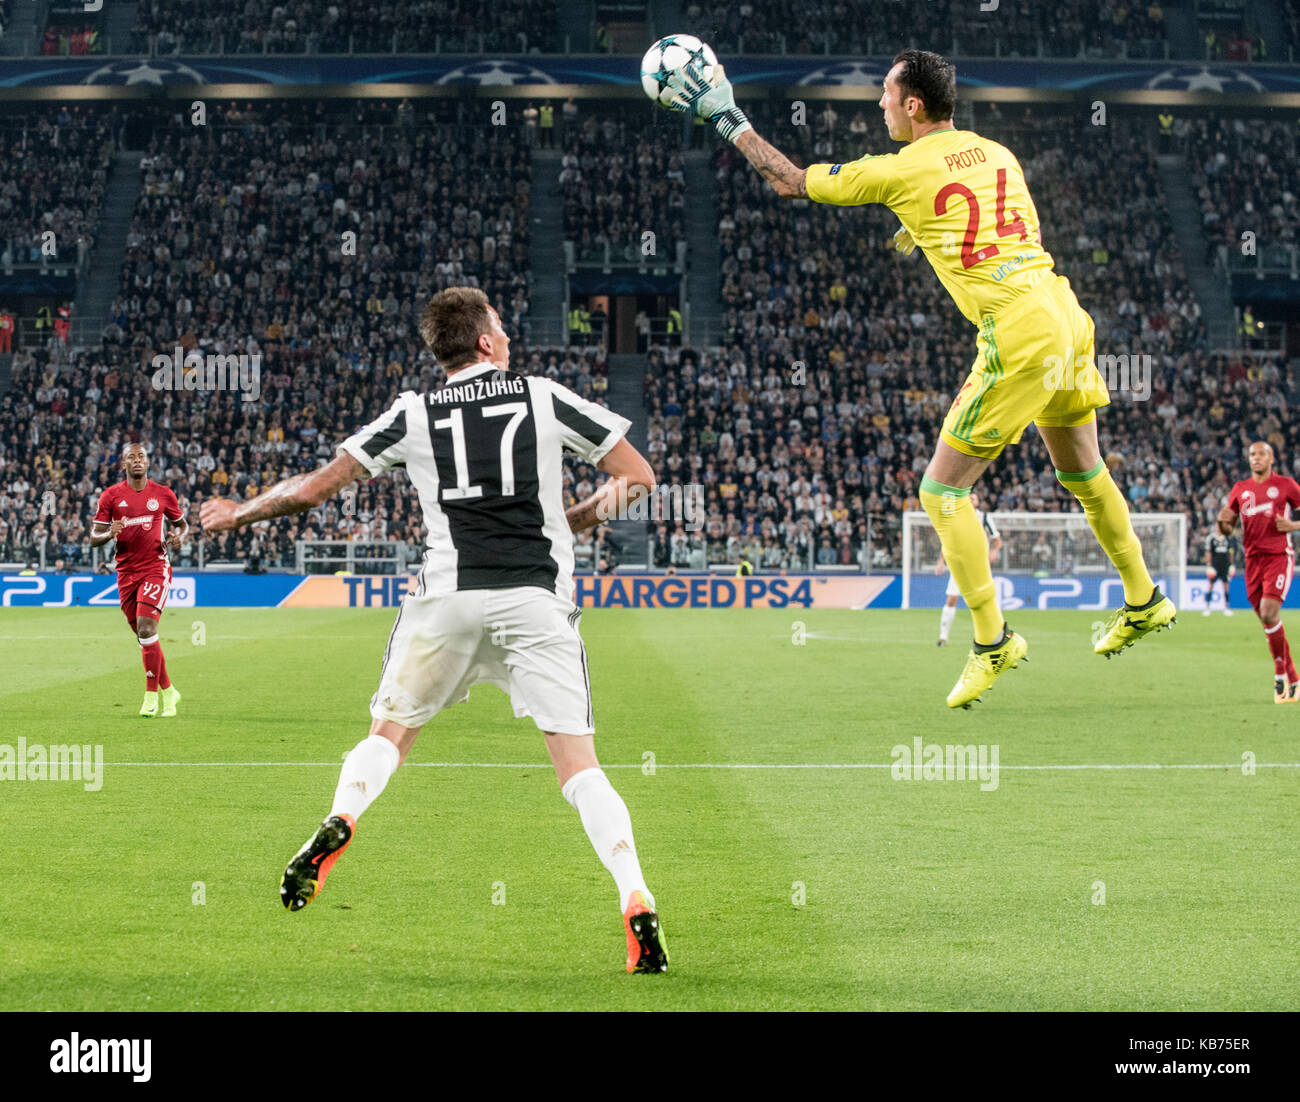 Silvio Proto During The Champions League Match Juventus Fc Vs Olympiacos